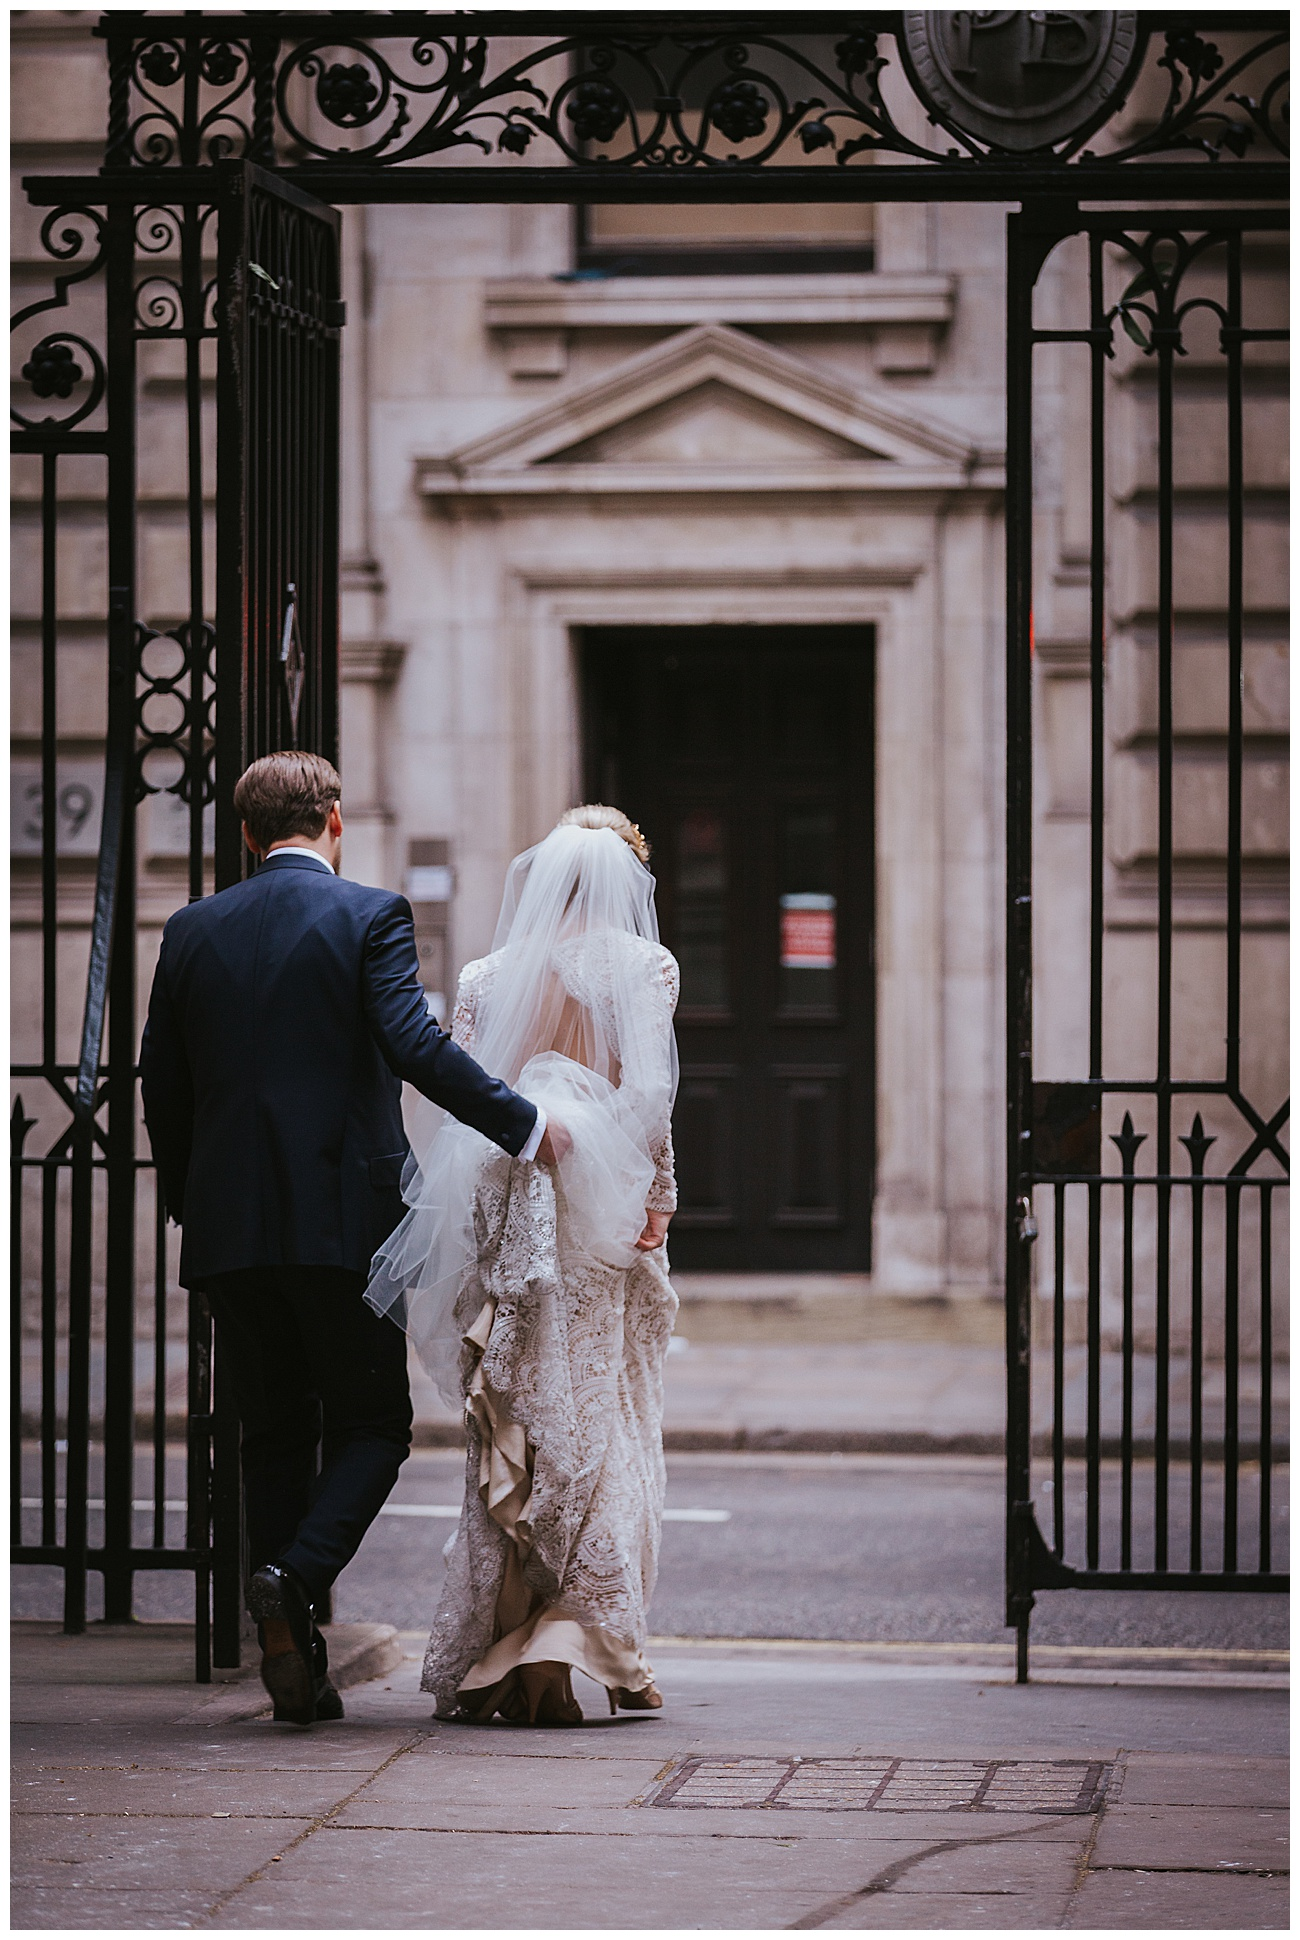 The groom holds the brides dress as they walk through the gates outside Gibson hall